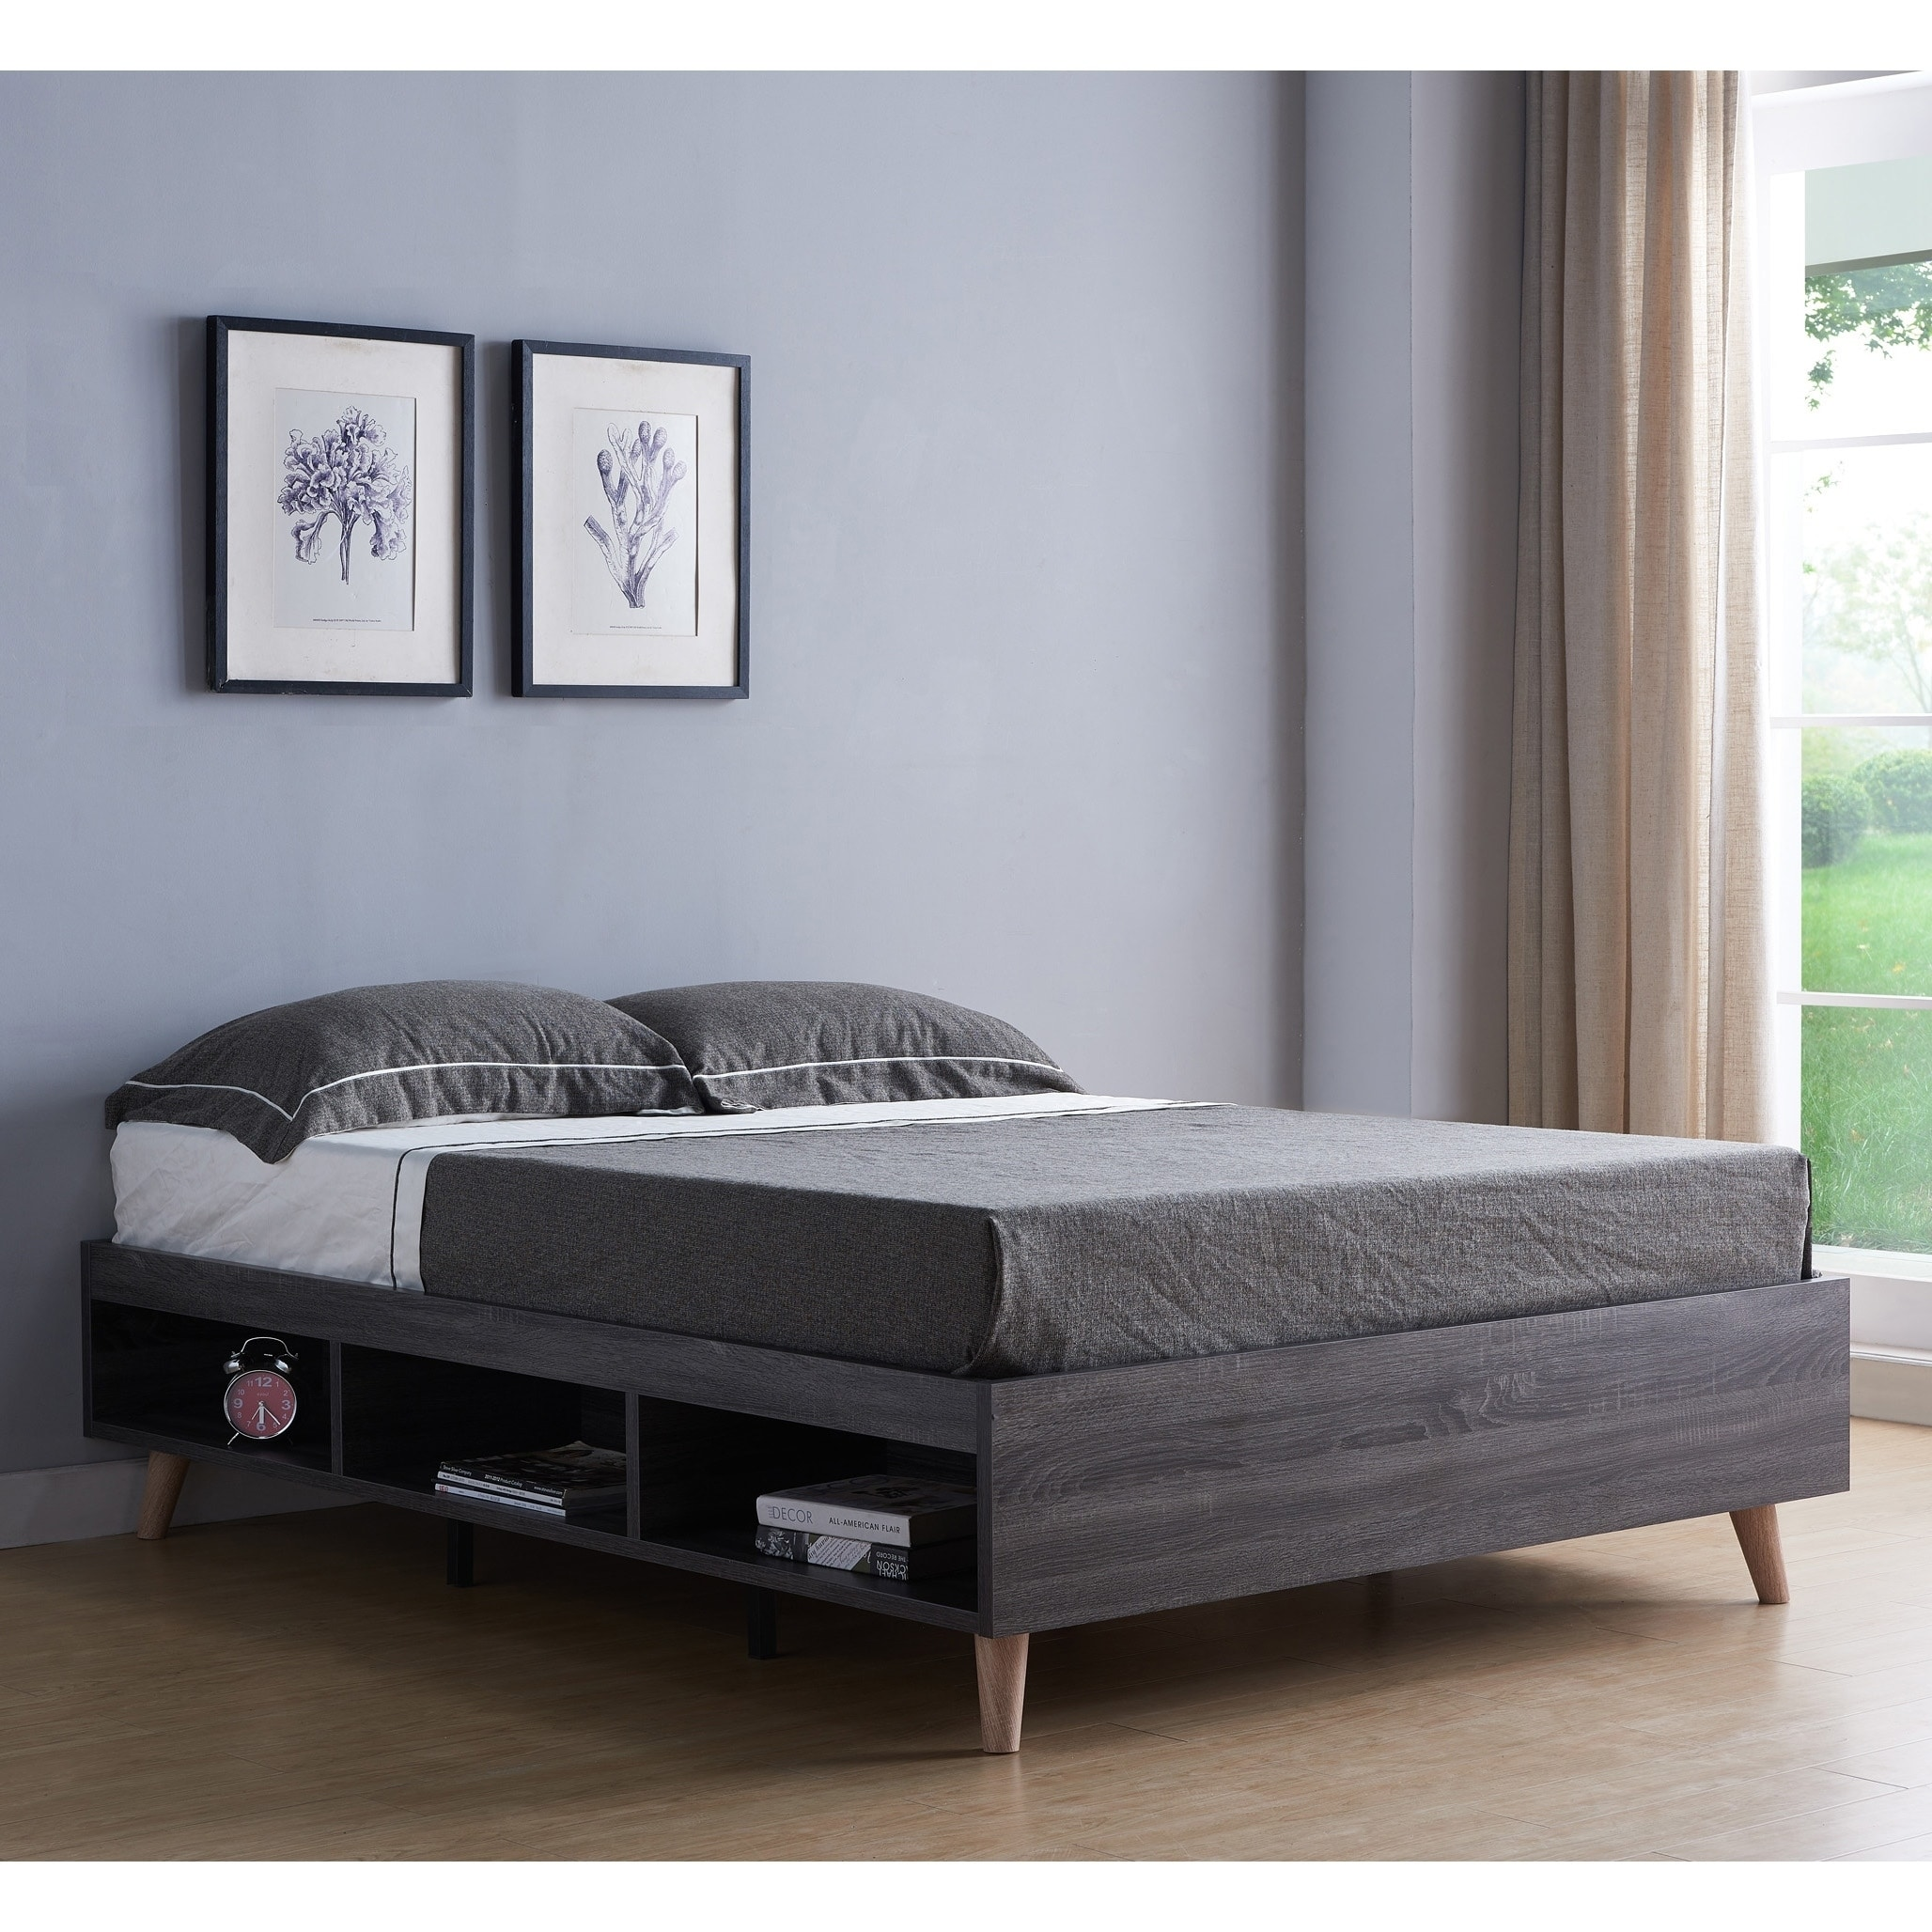 Shop Black Friday Deals On Carson Carrington Jutsajaure Grey Storage Queen Platform Bed Overstock 28991436